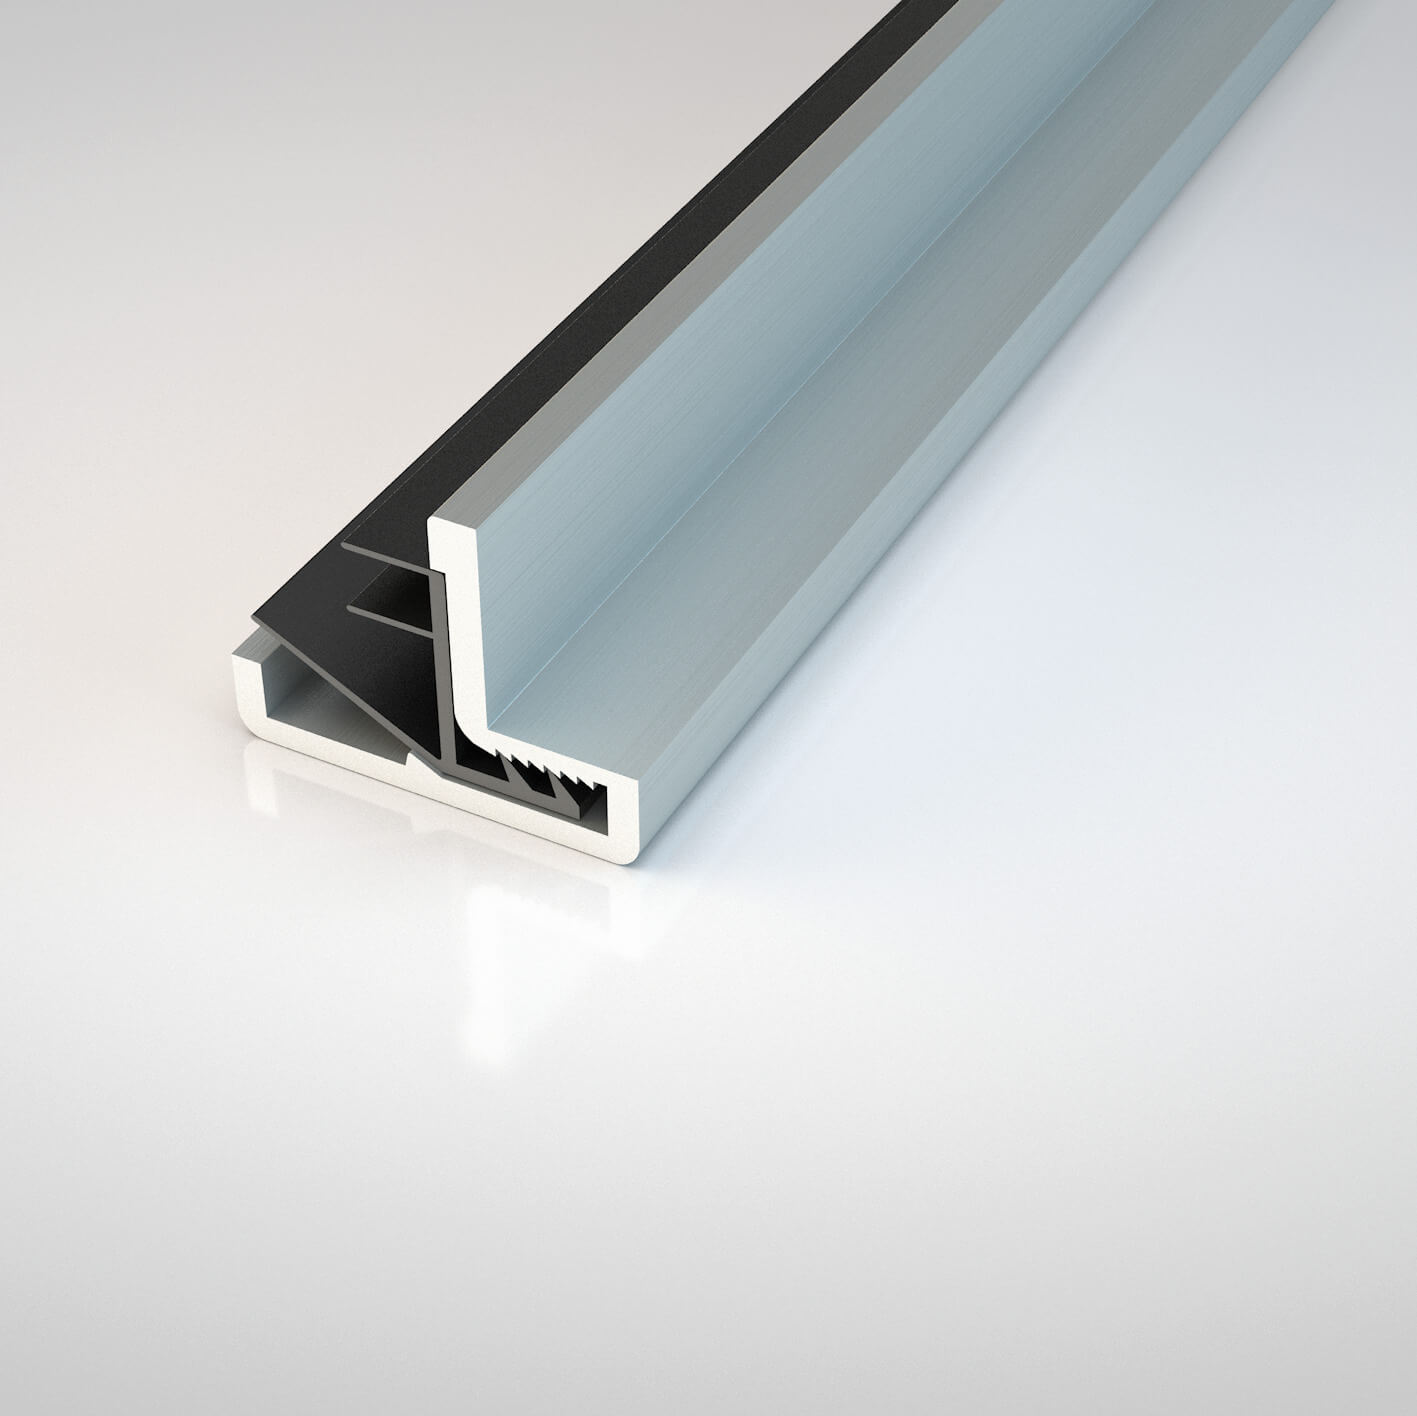 Norseal NOR510 Meeting Stile Seal 2100mm